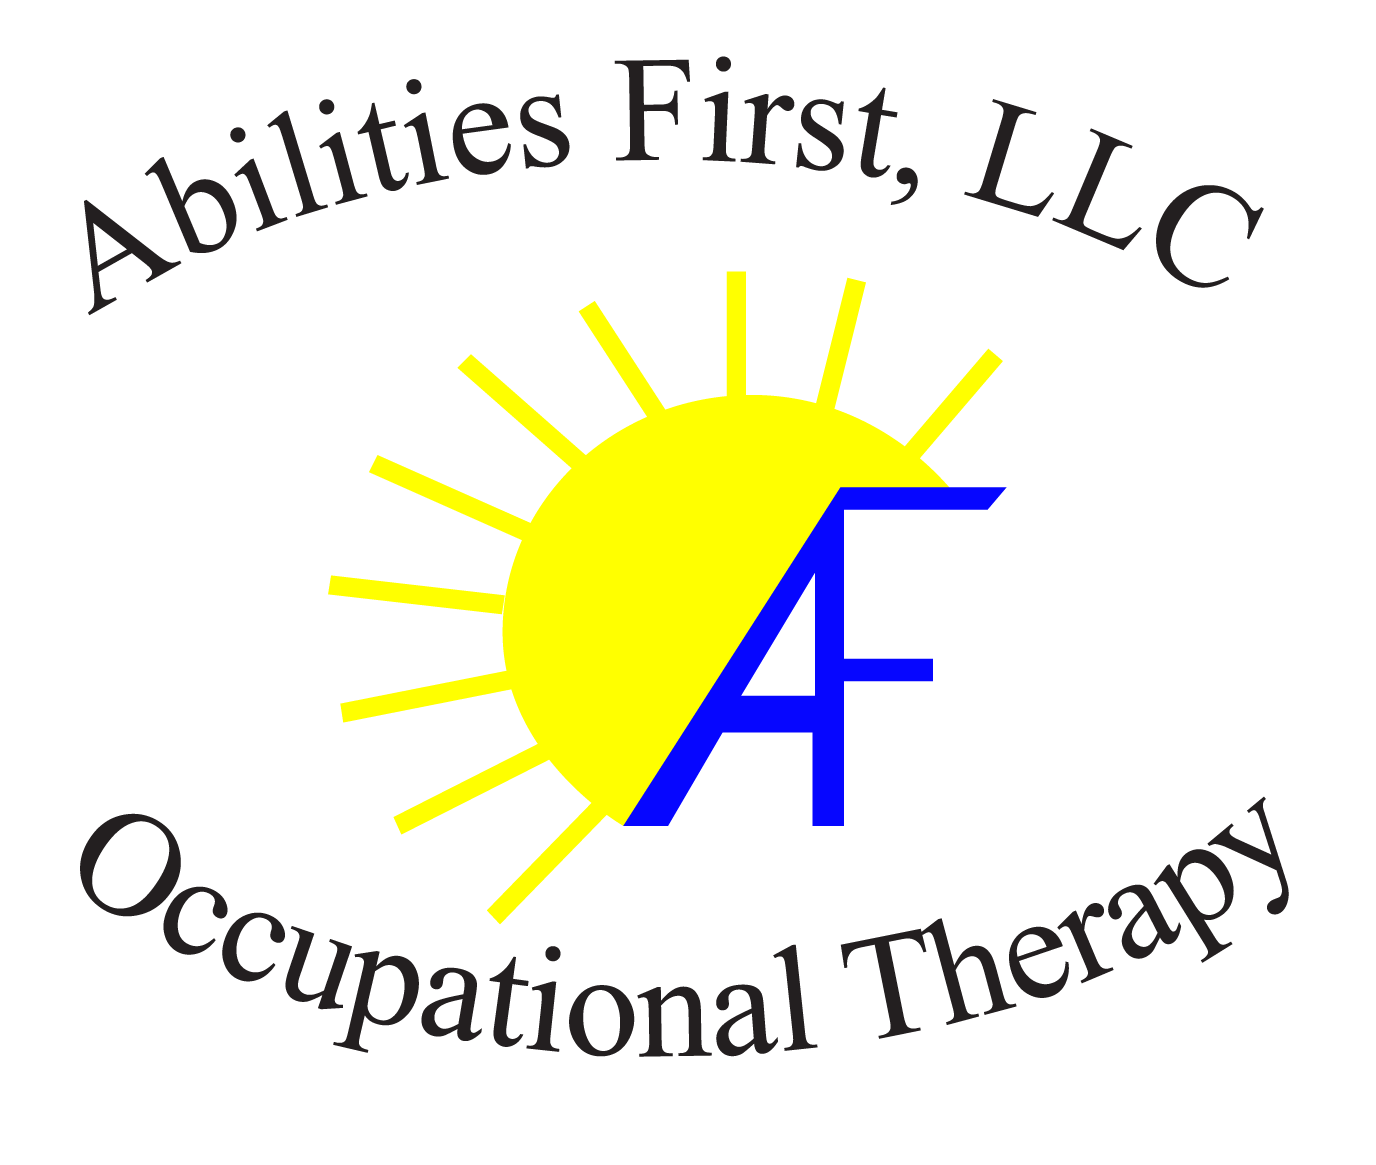 Abilities First, LLC logo